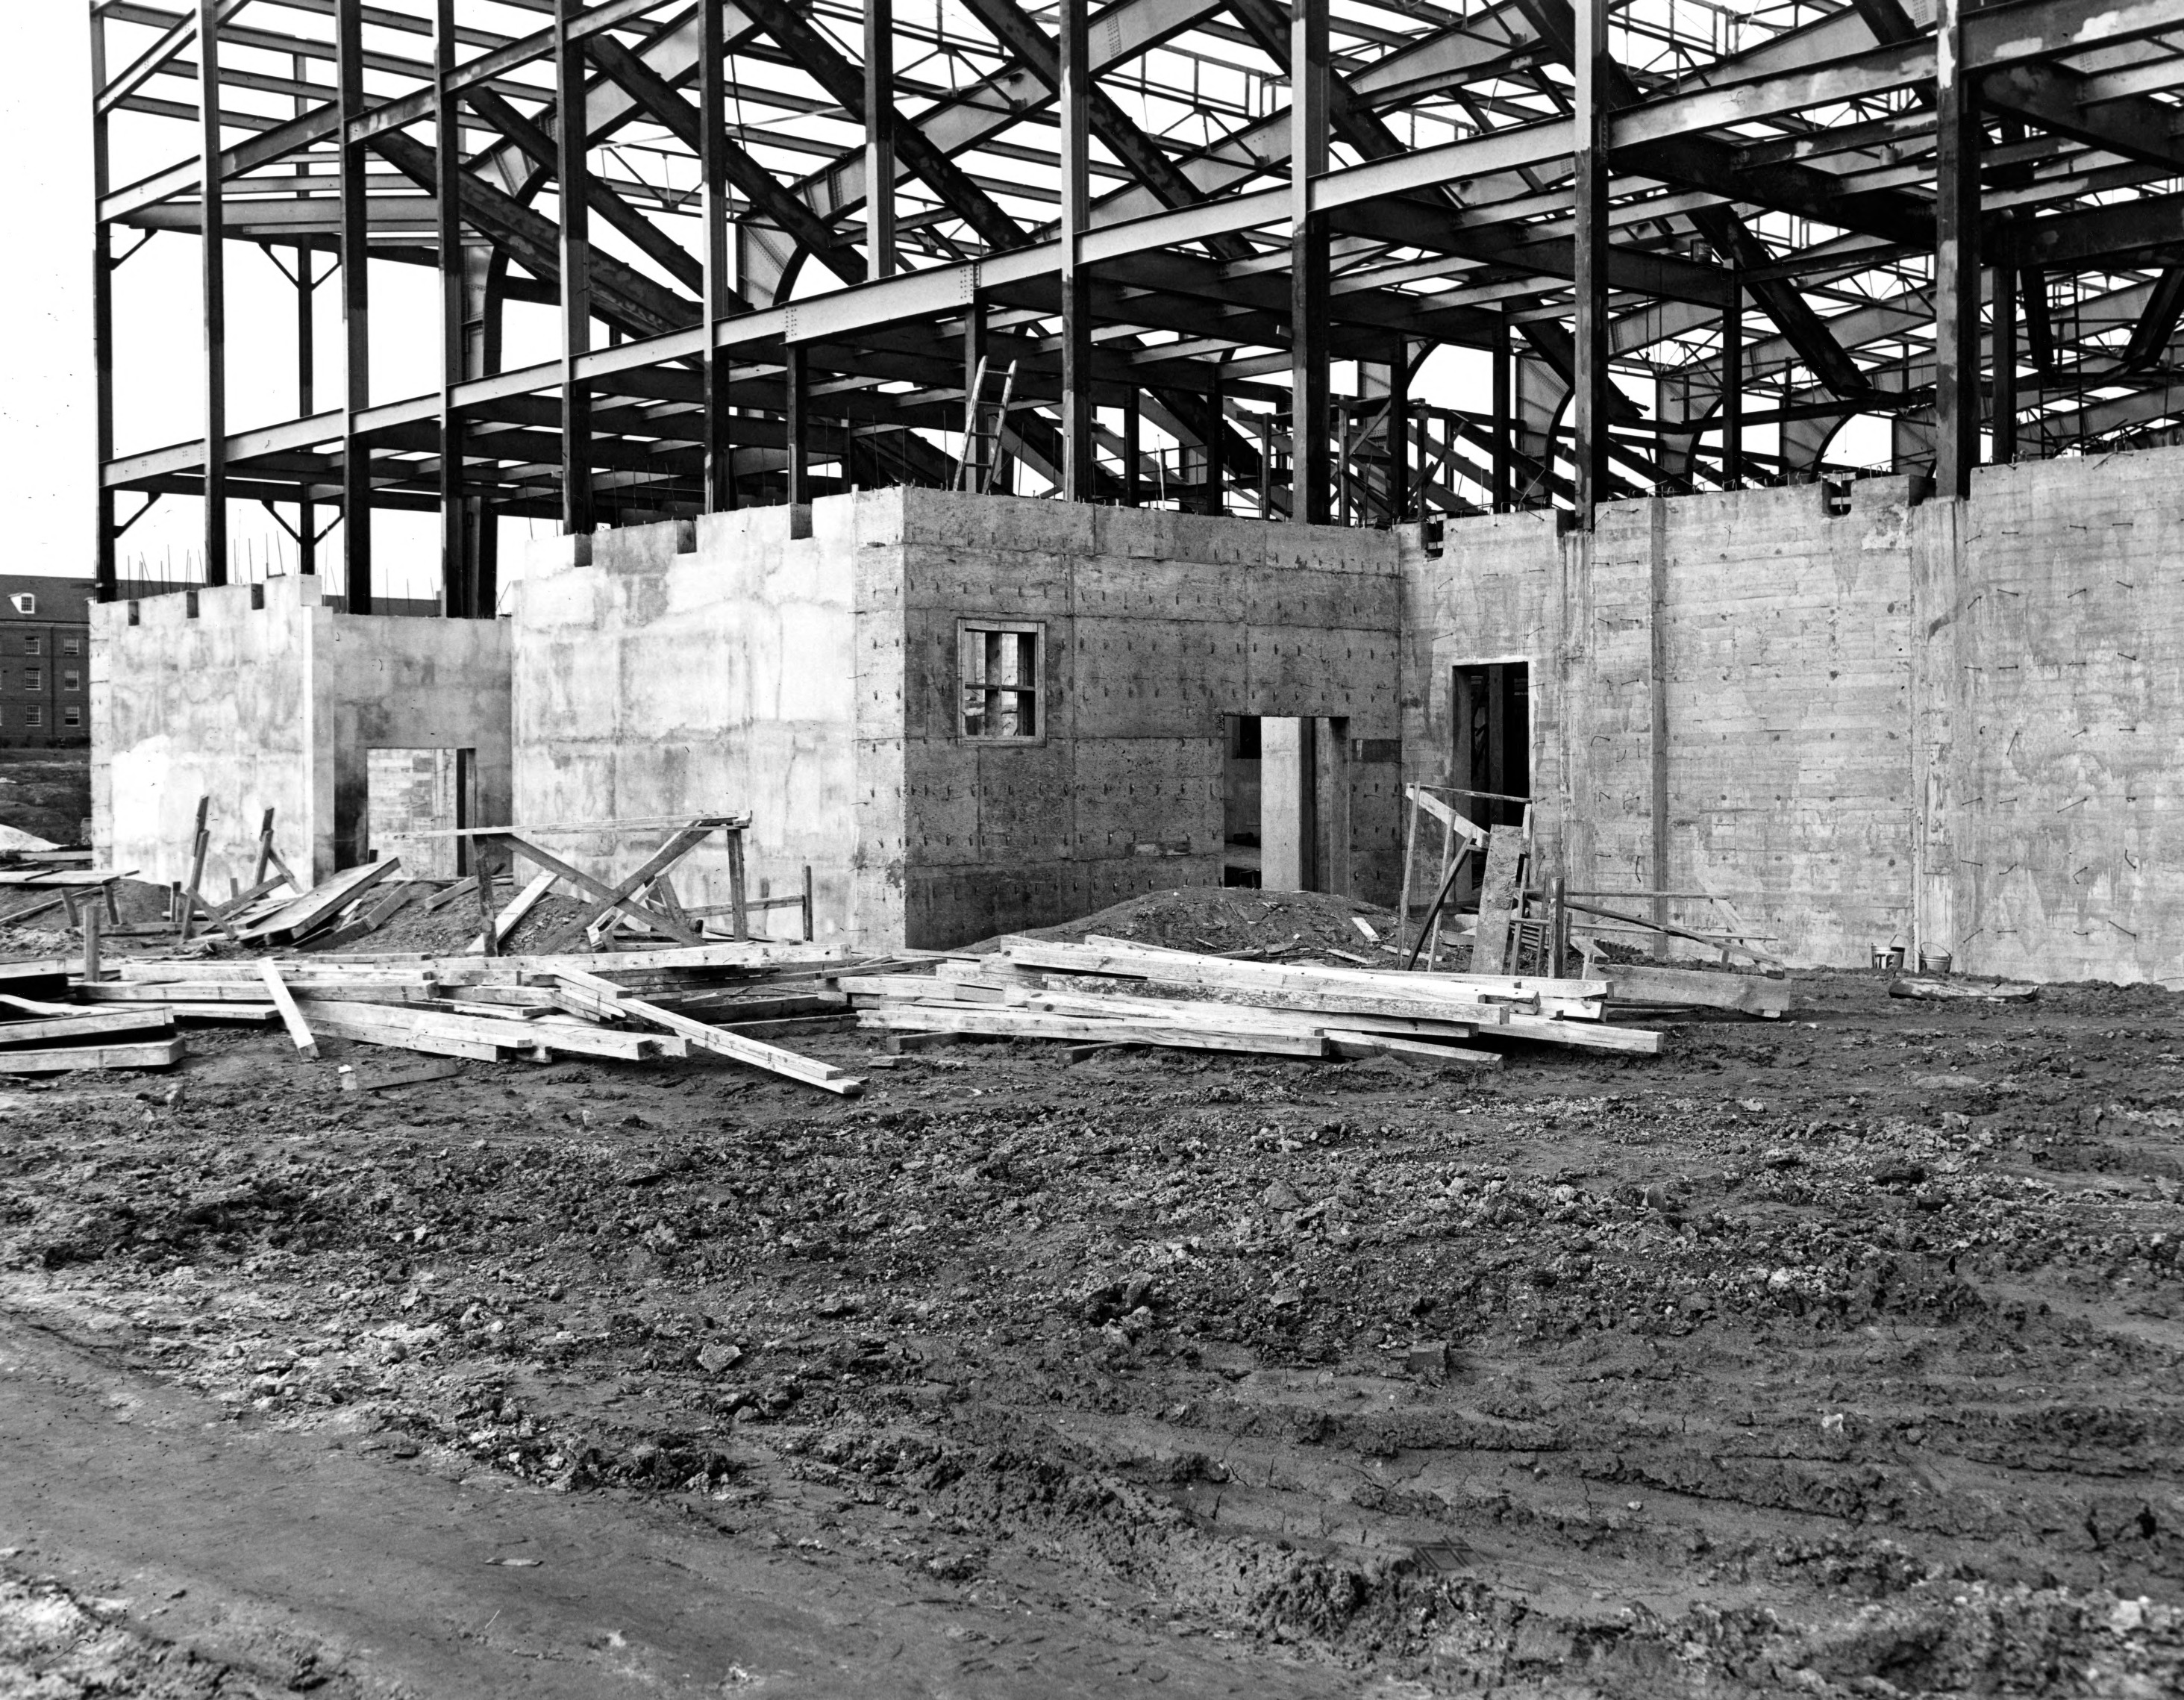 Reynolds Coliseum, construction